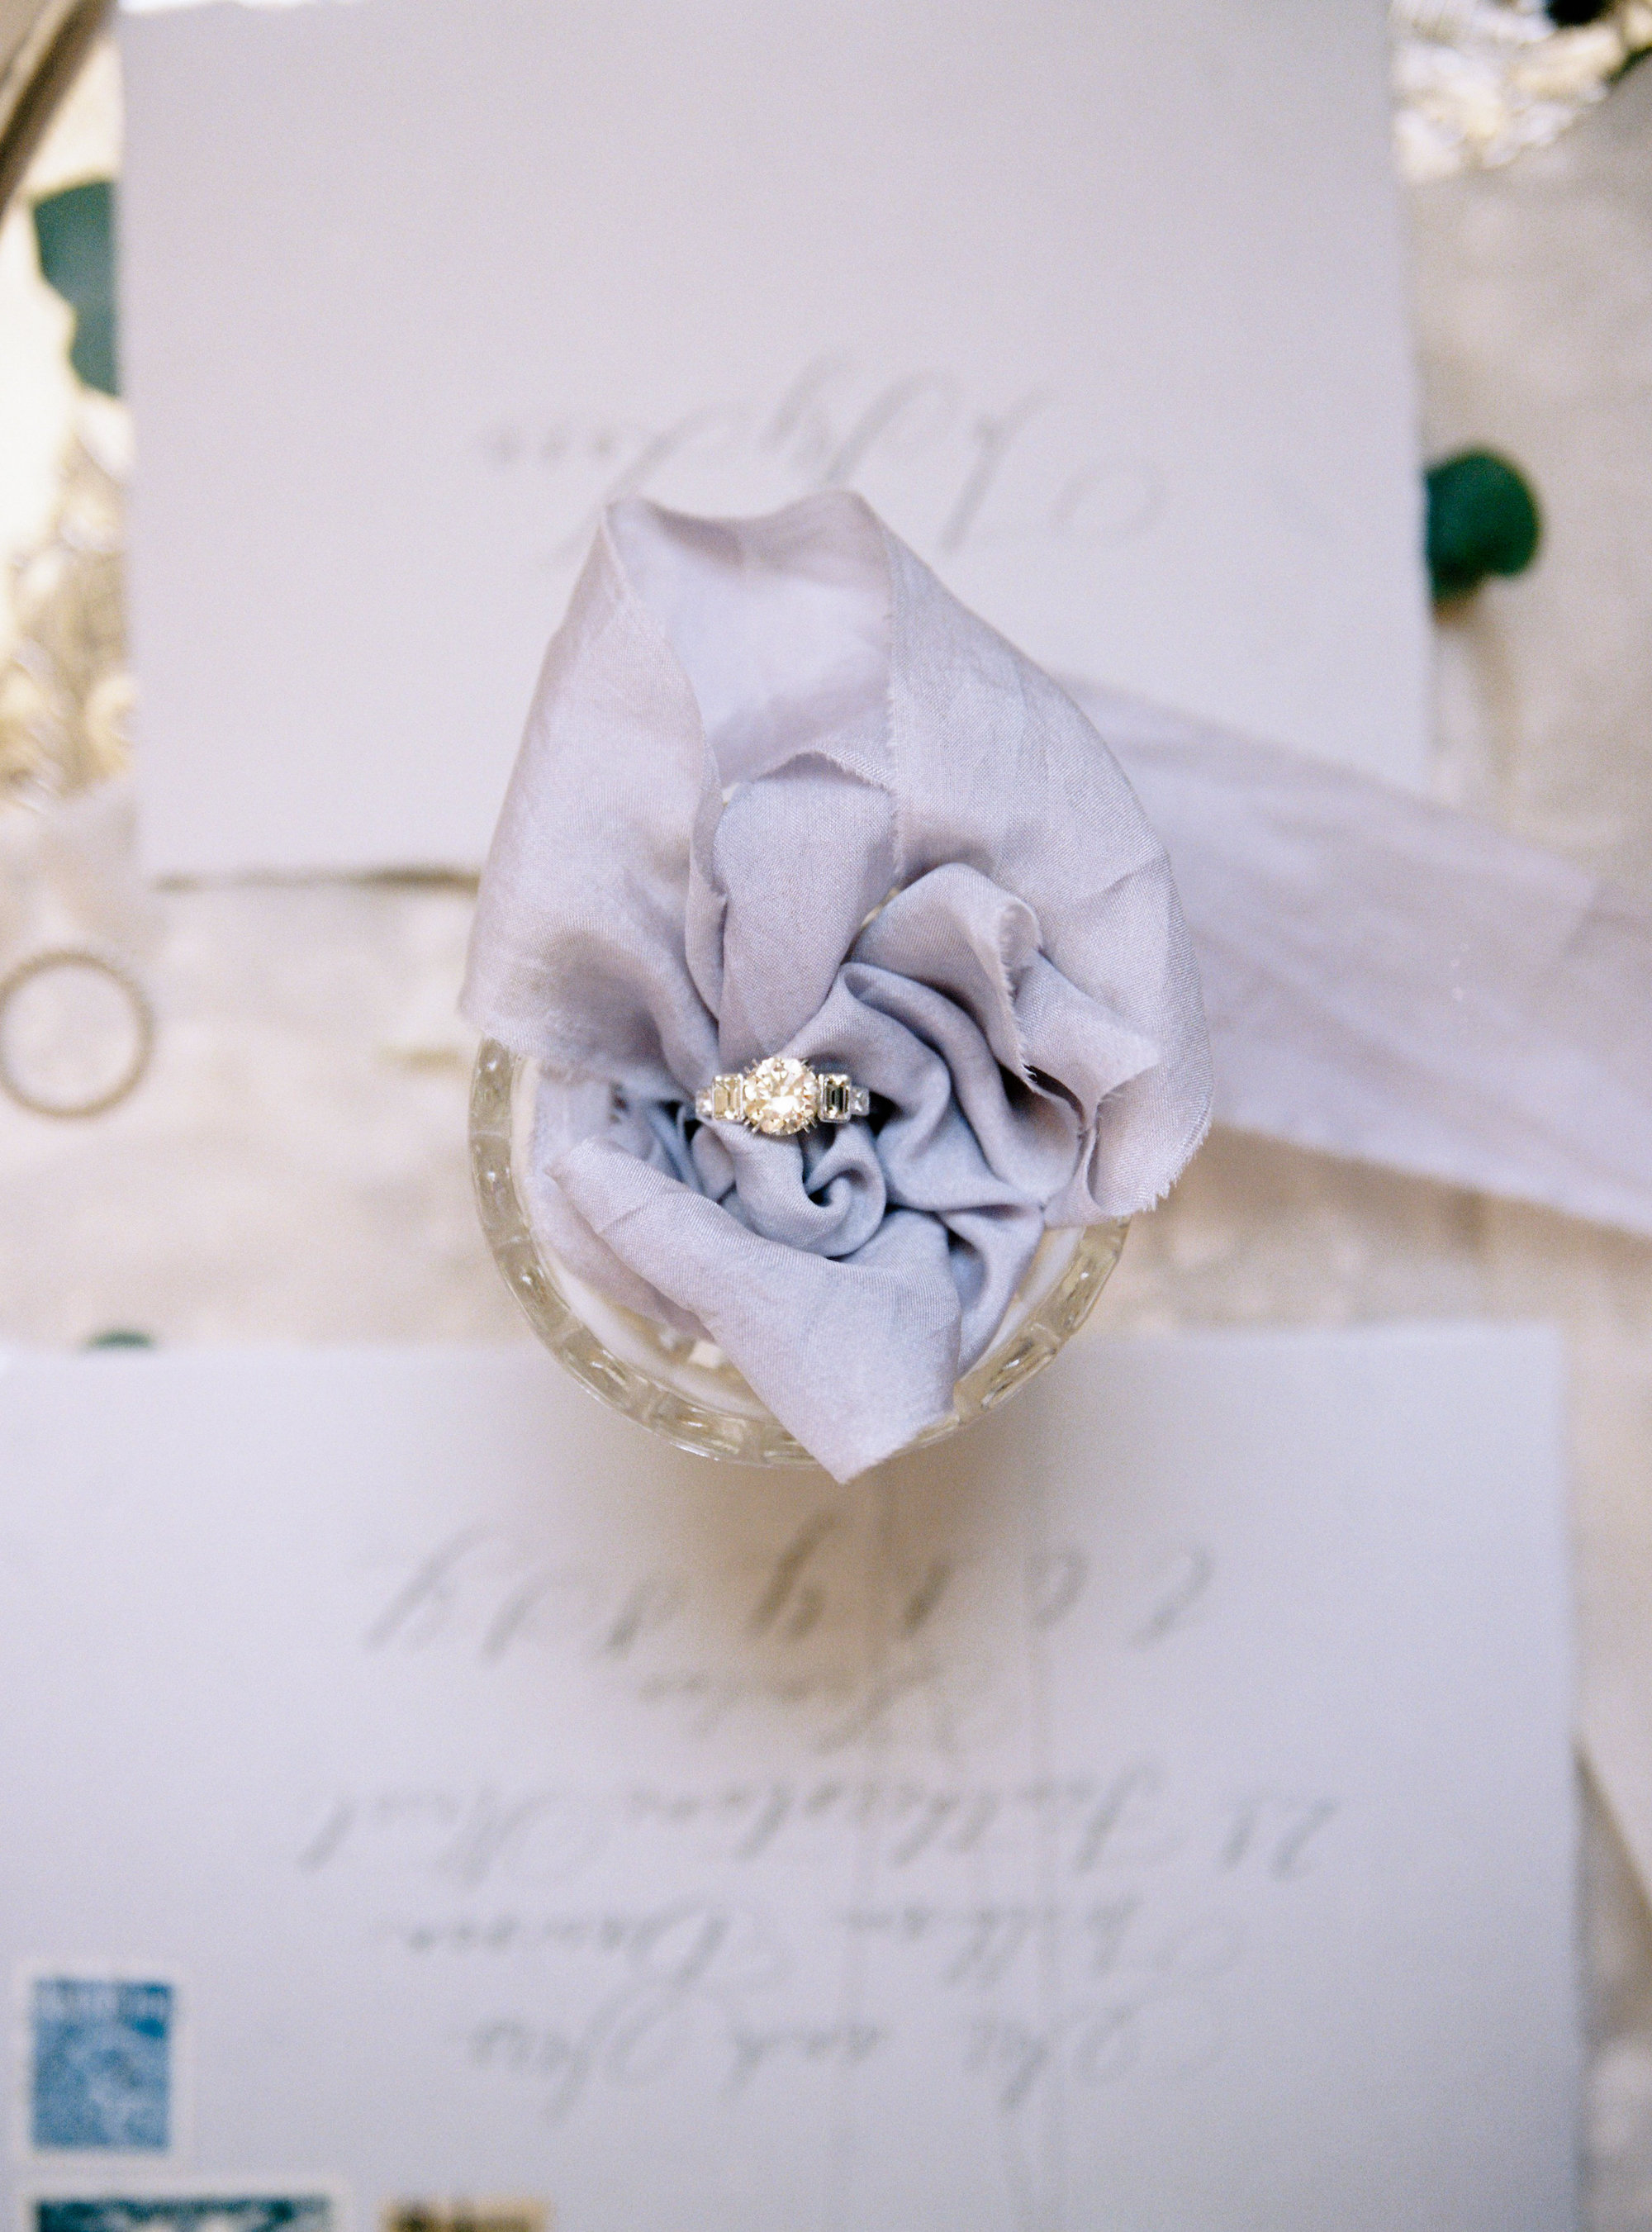 Luxury Wedding Planner UK | A Timeless English Inspired Editorial with Georgian Blue | Cotswolds Wedding White and Silver Toned Green Neutral Tones | The Royal Crescent Hotel Bath | Alexander J Collins Photography 25 .jpg